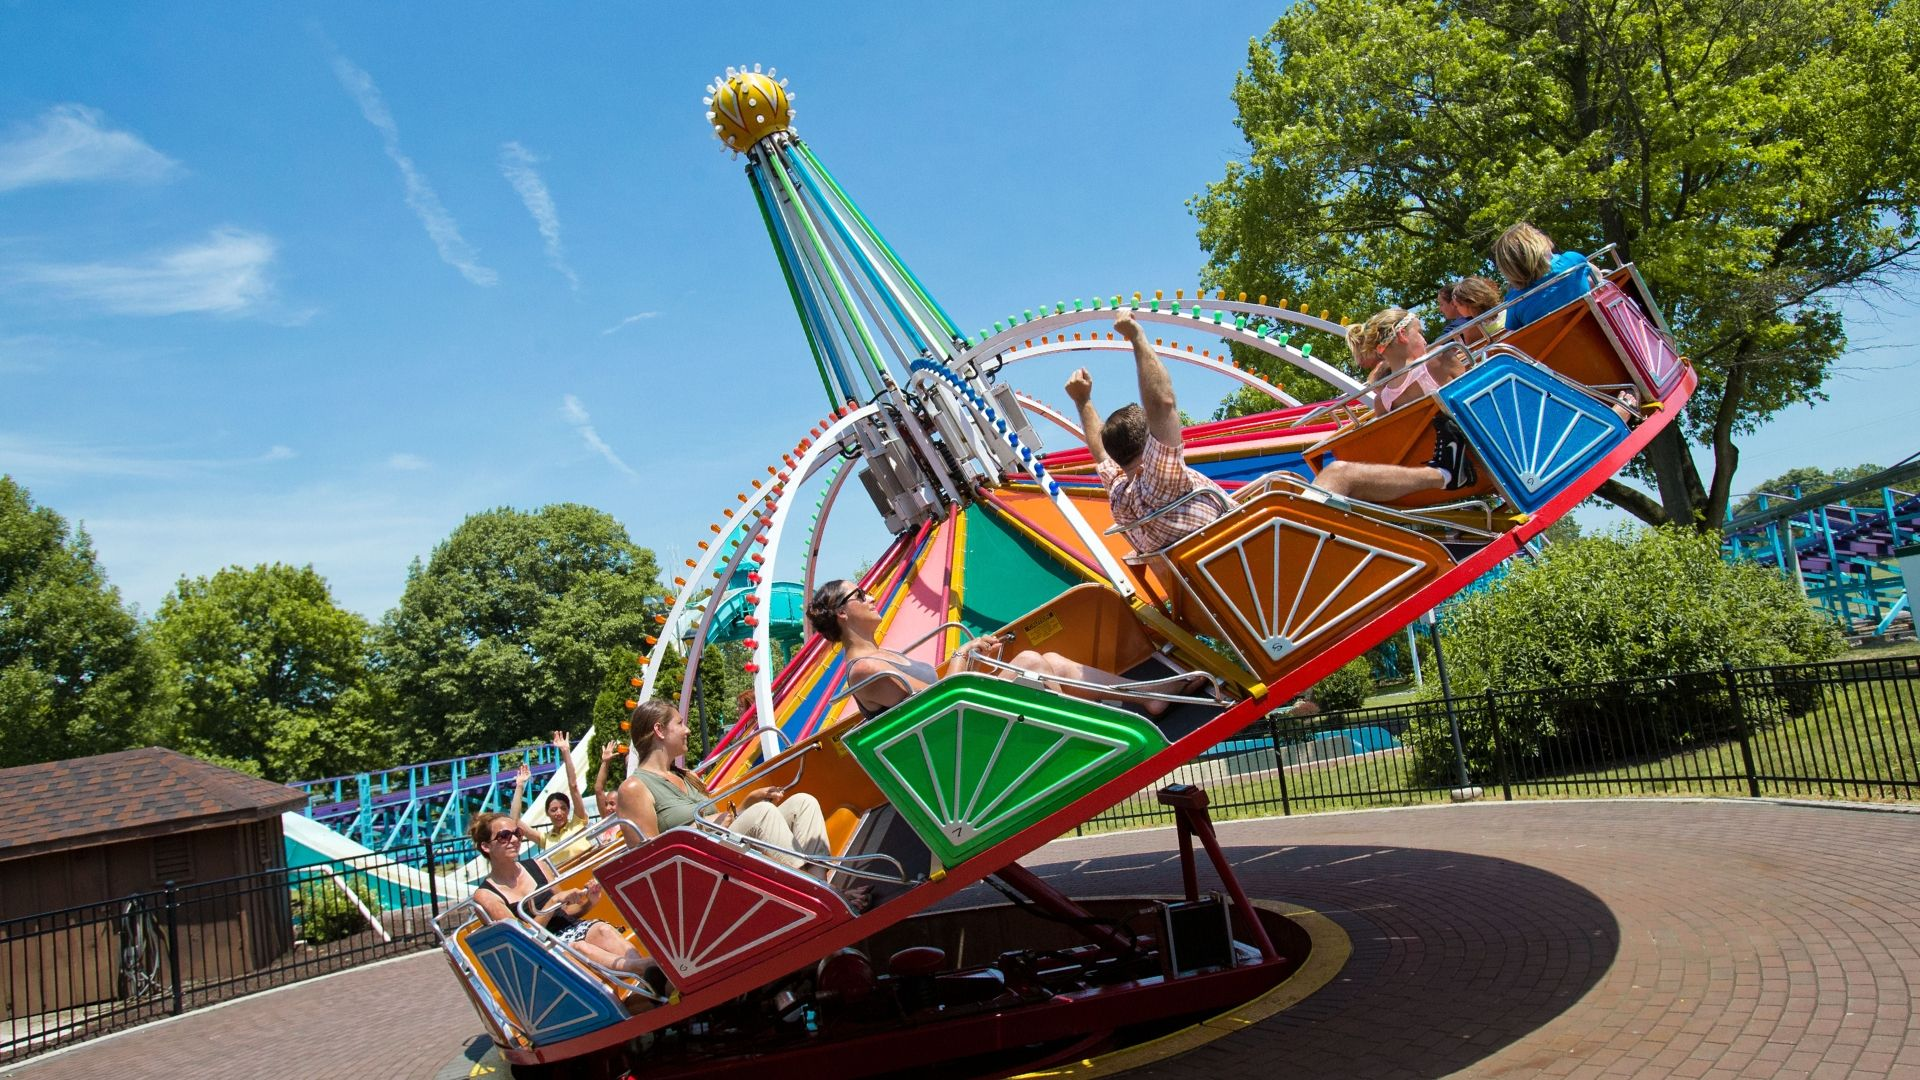 Families riding in colorful undulating twister ride